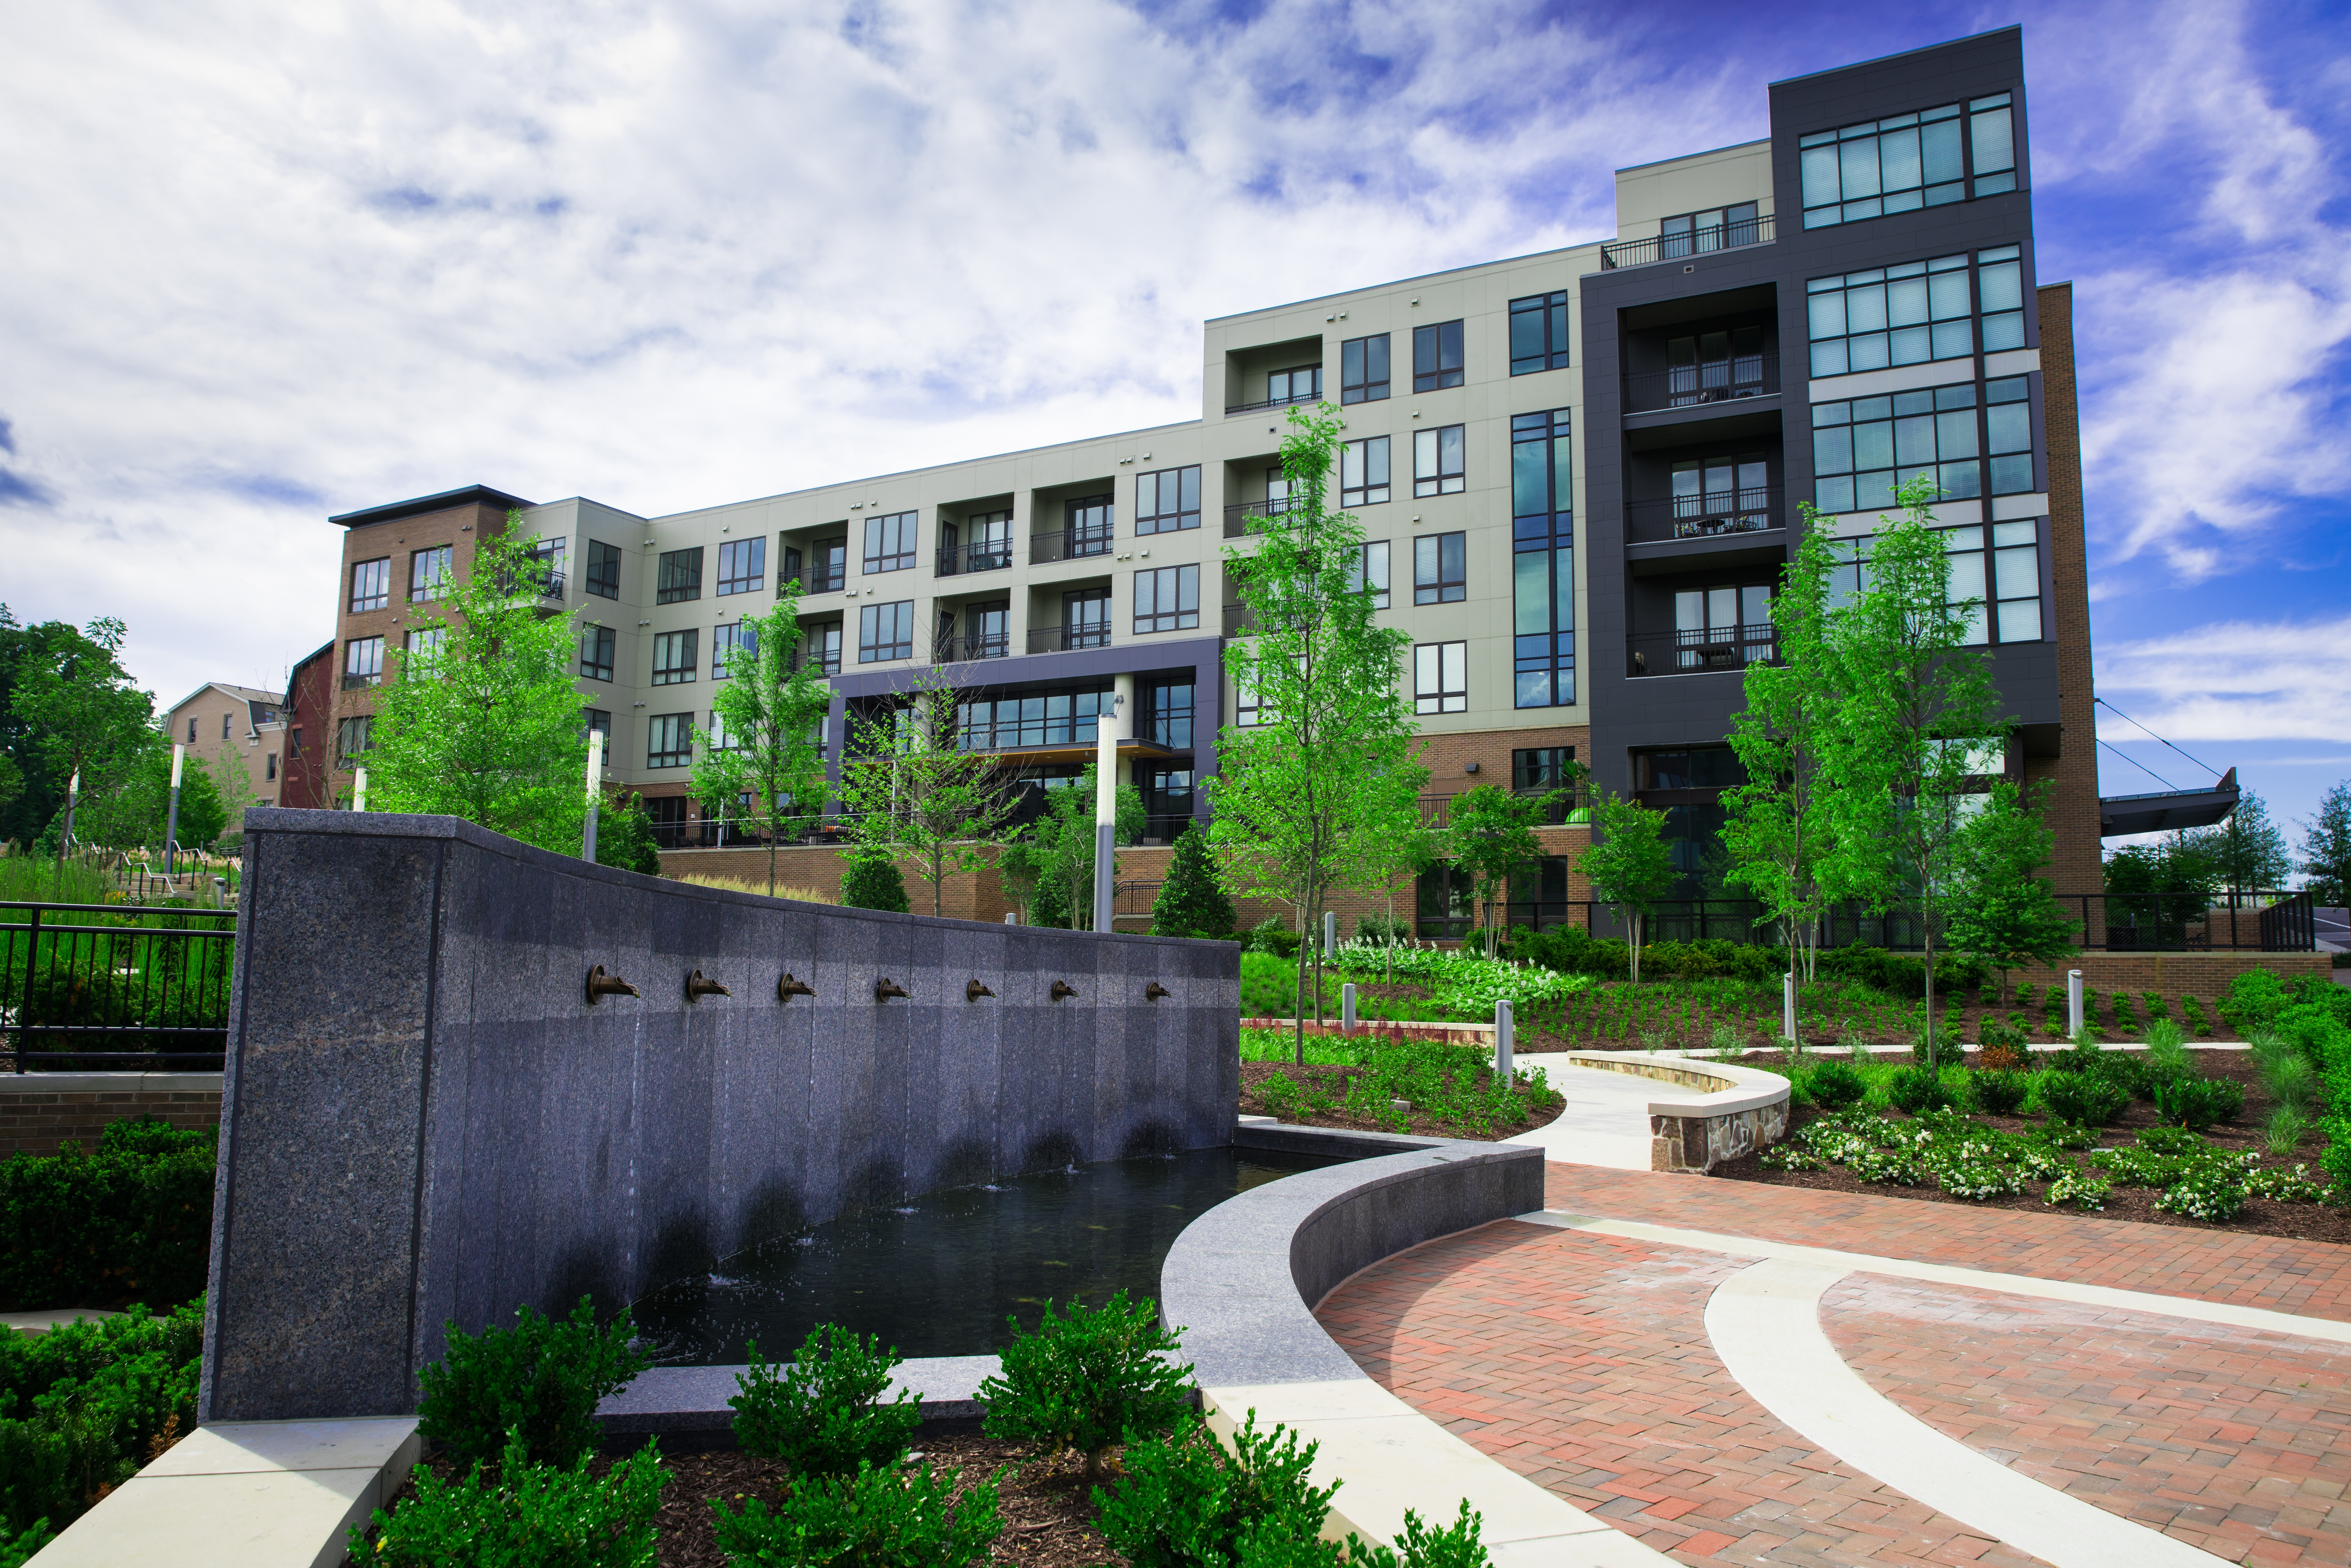 Using professional photography in marketing landscaping services.